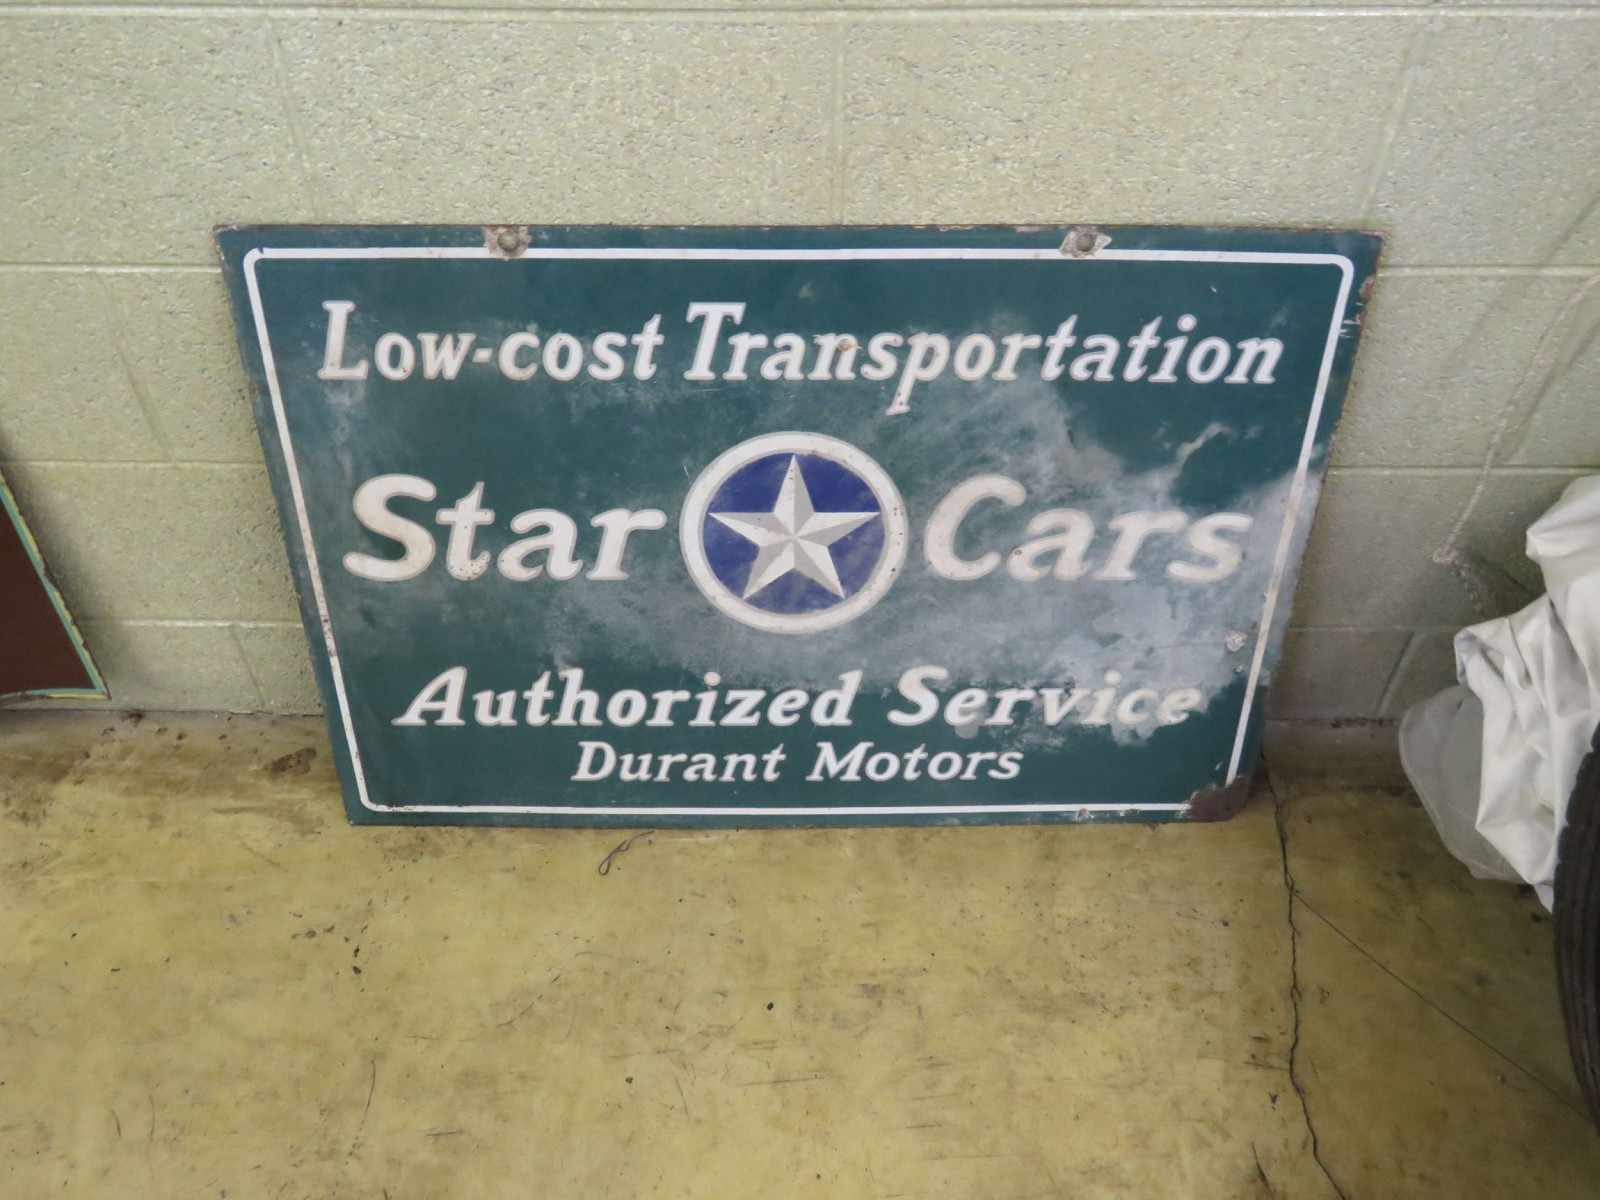 Star Cars-Durant Cars Porcelain Sign - Image 2